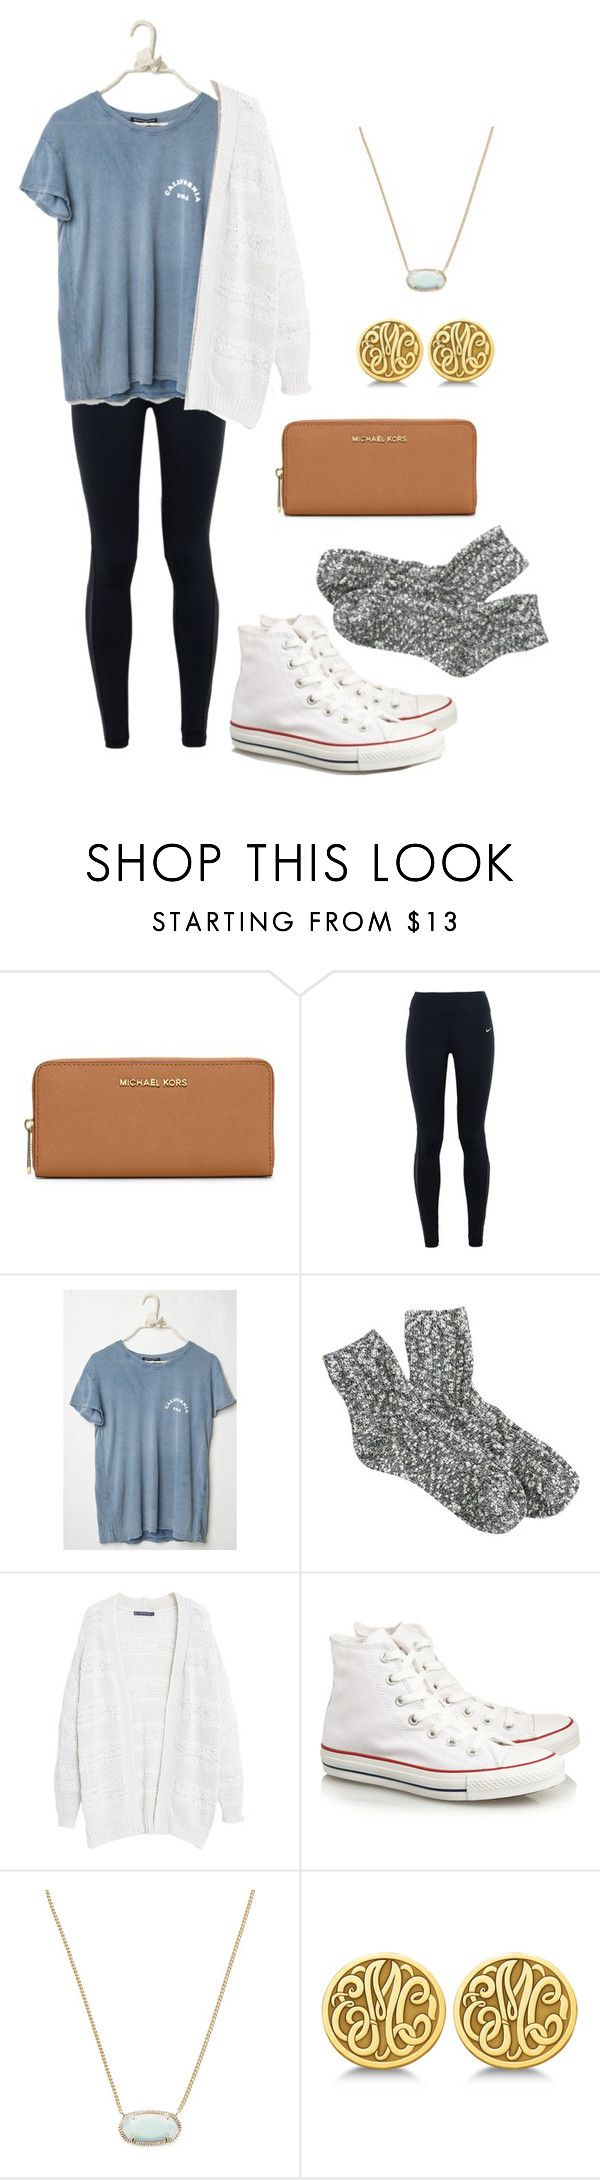 """""""Too cute for school"""" by vineyard-vines-love ❤ liked on Polyvore featuring MICHAEL Michael Kors, NIKE, J.Crew, Violeta by Mango, Converse, Kendra Scott and Allurez"""